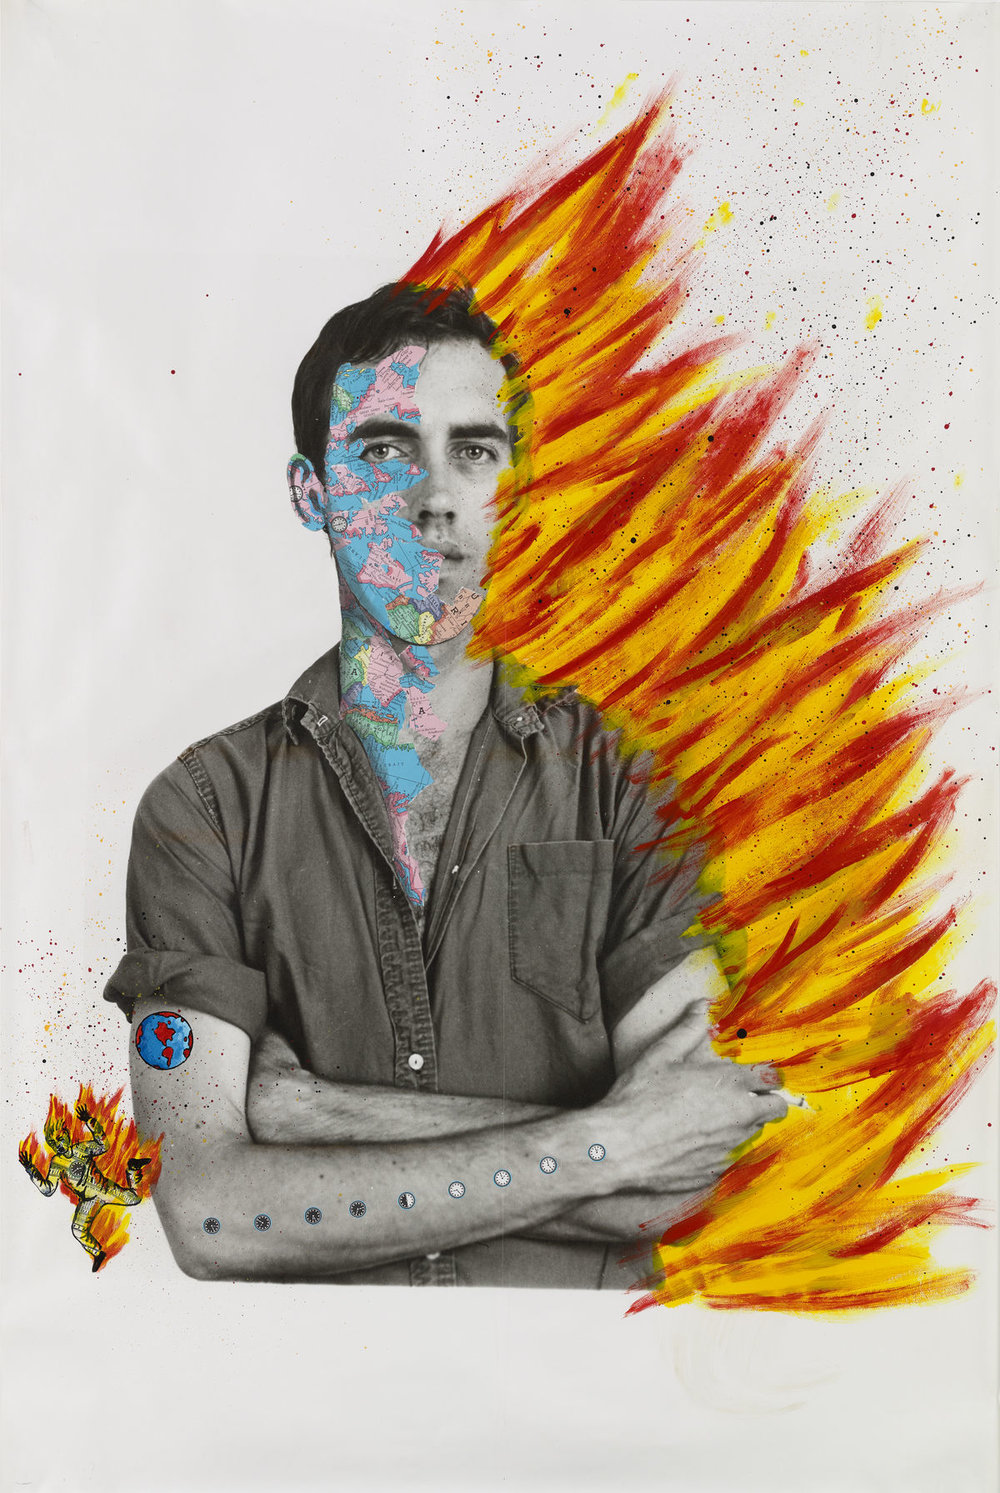 David Wojnarowicz (1954–1992) with Tom Warren,  Self-Portrait of David Wojnarowicz , 1983–84. Acrylic and collaged paper on gelatin silver print, 60 × 40 in. (152.4 × 101.6 cm). Collection of Brooke Garber Neidich and Daniel Neidich, Photograph by Ron Amstutz